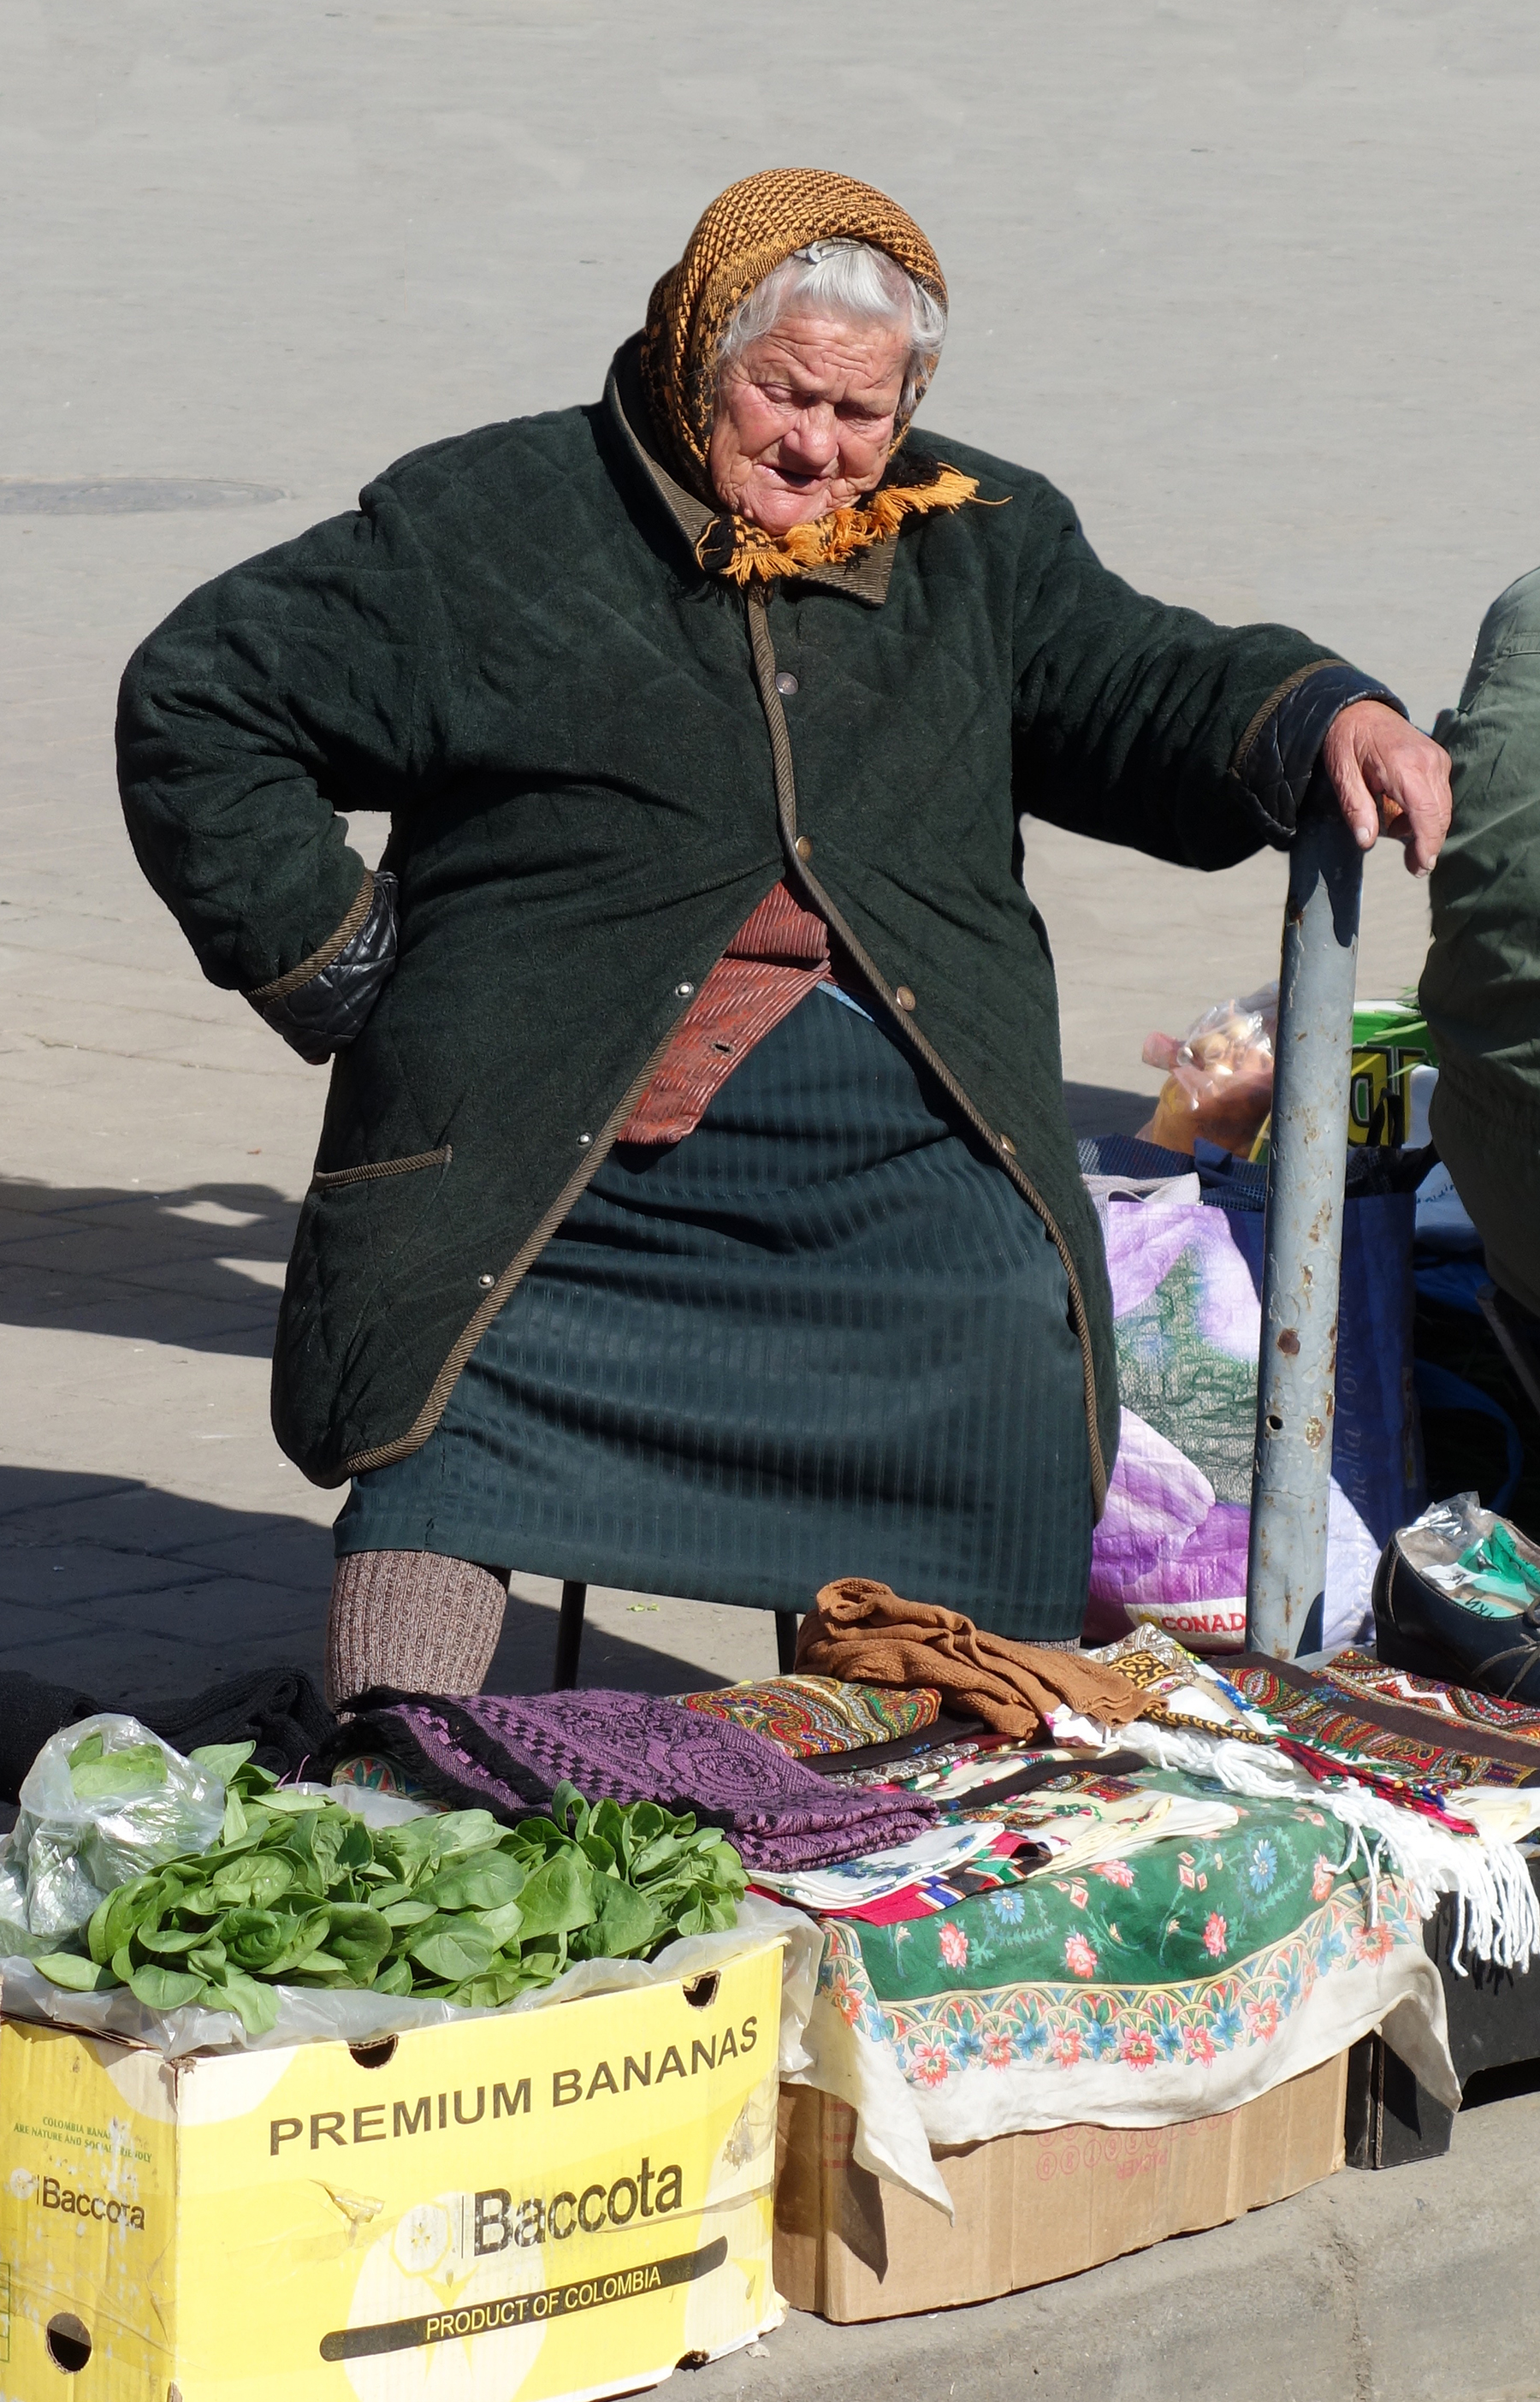 ab. old lady seller